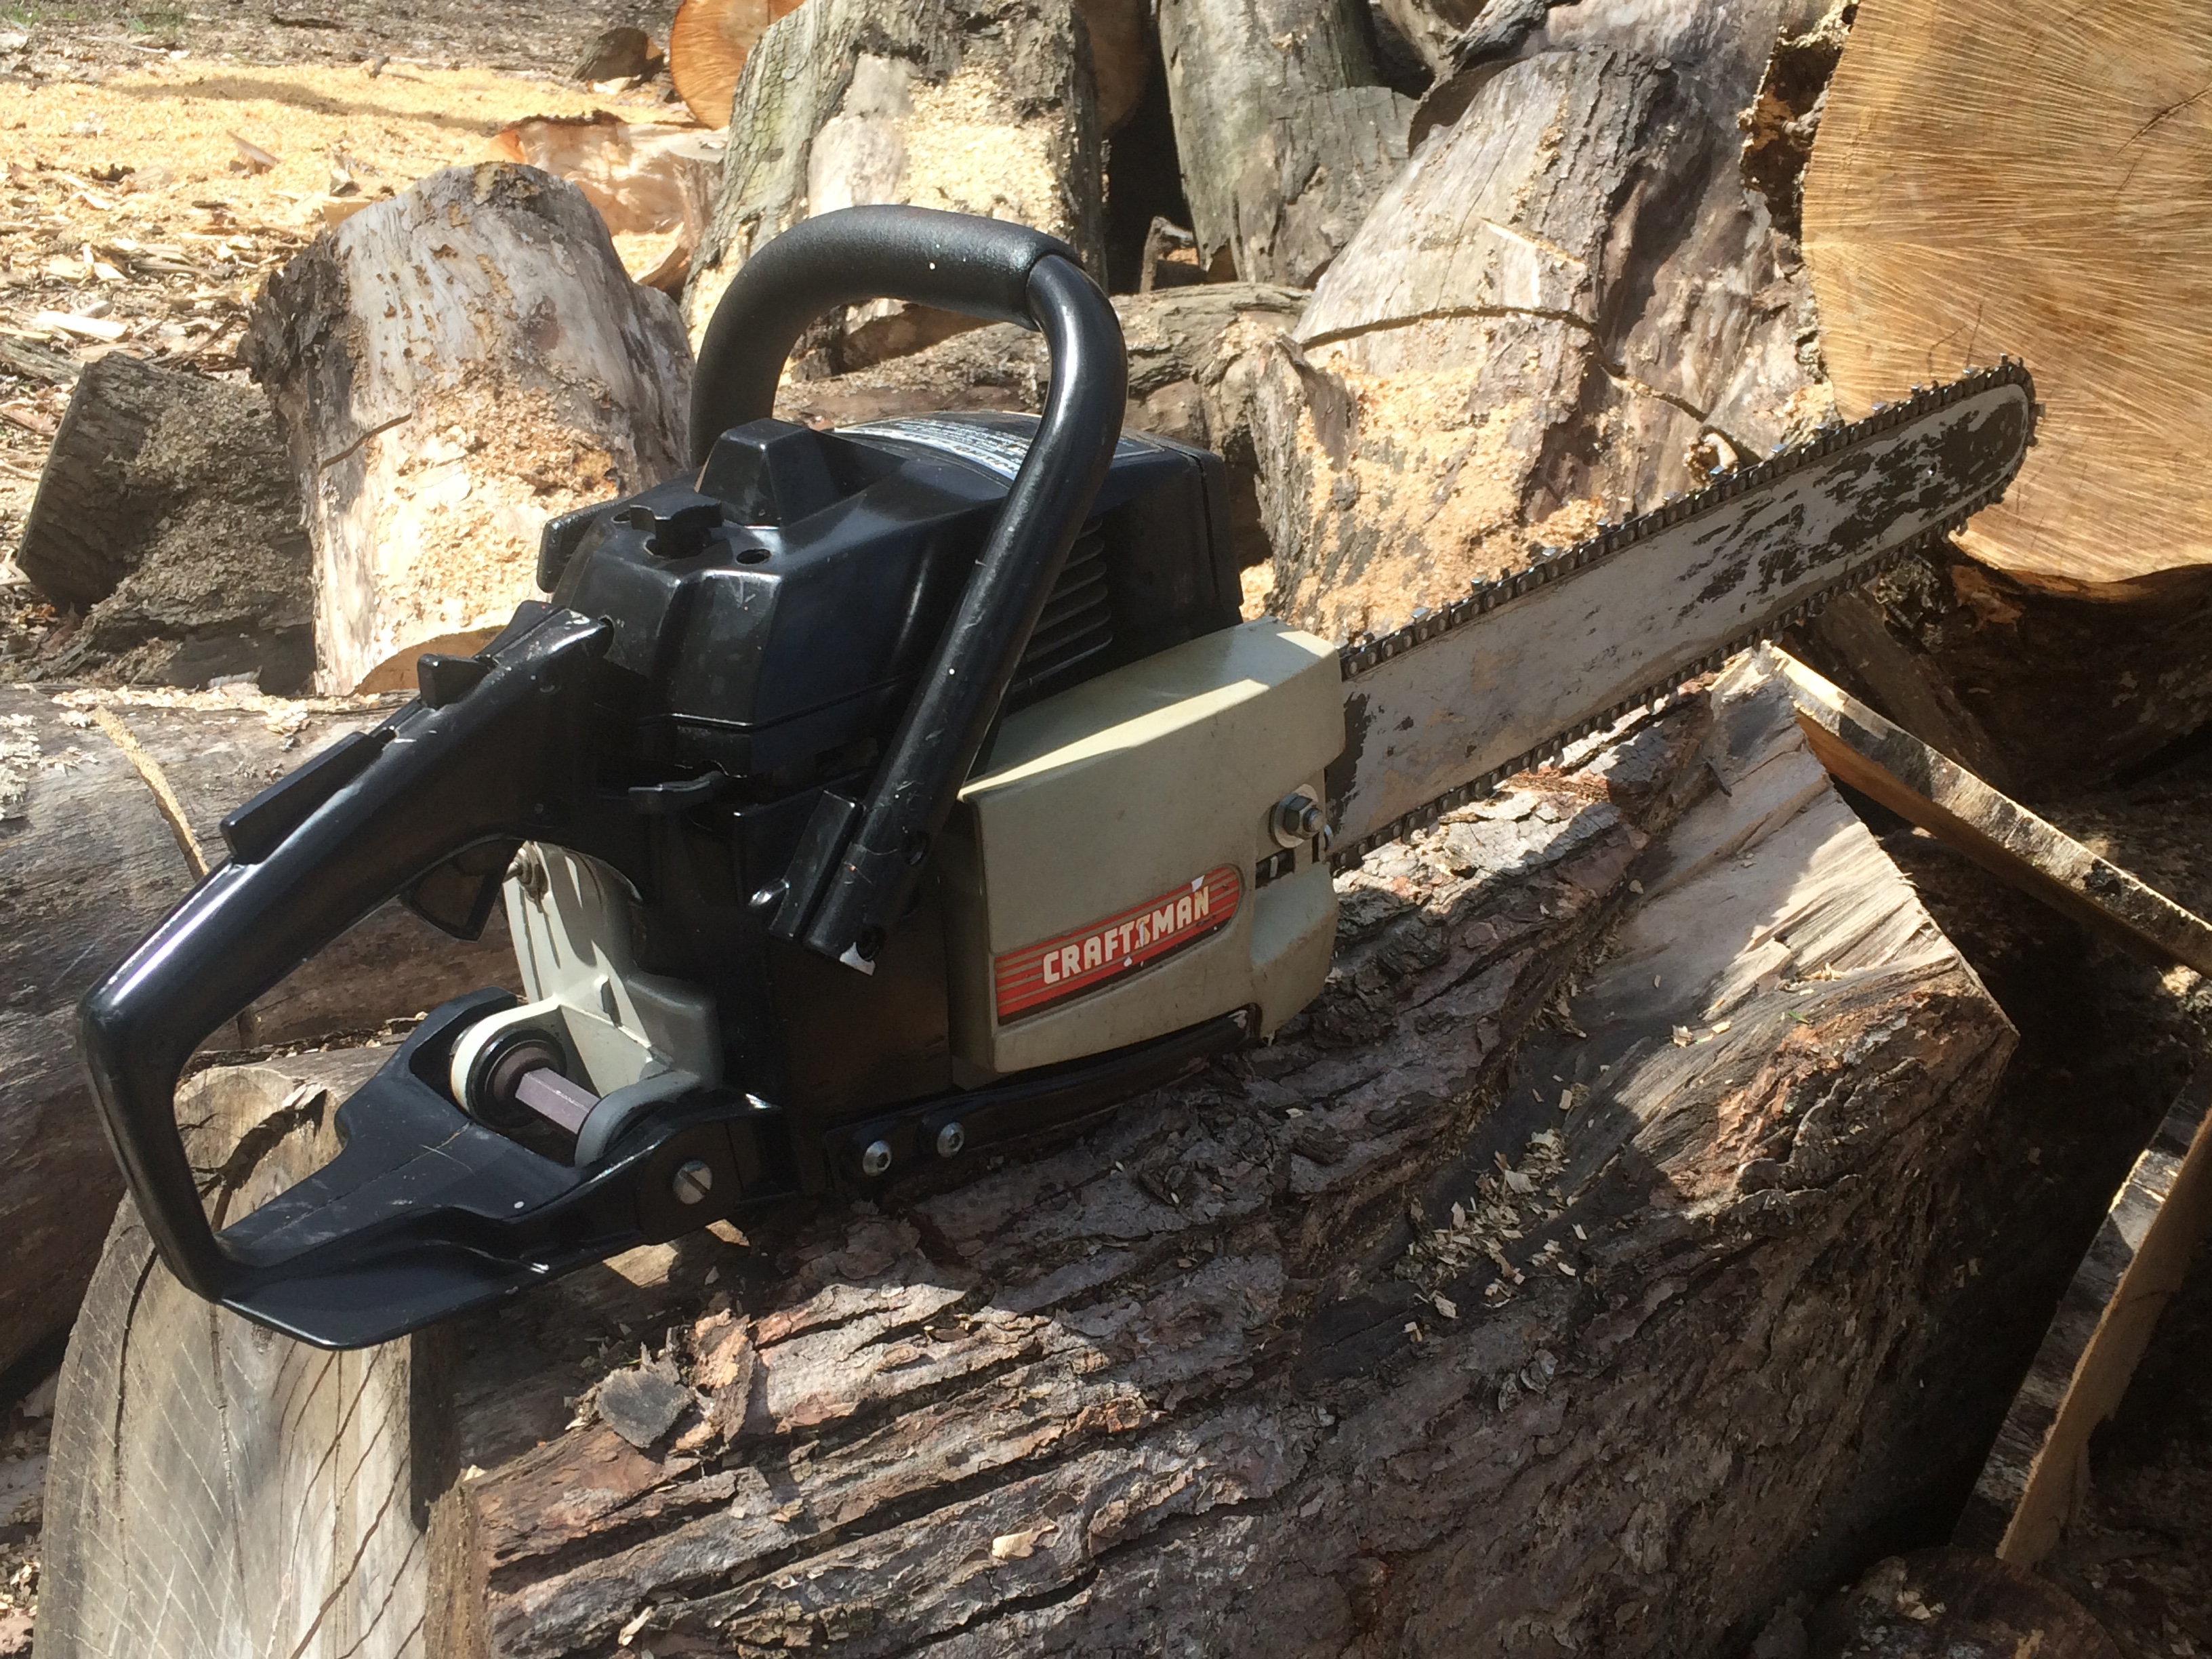 Craftsman 3.7 (Poulan 3700) chainsaw